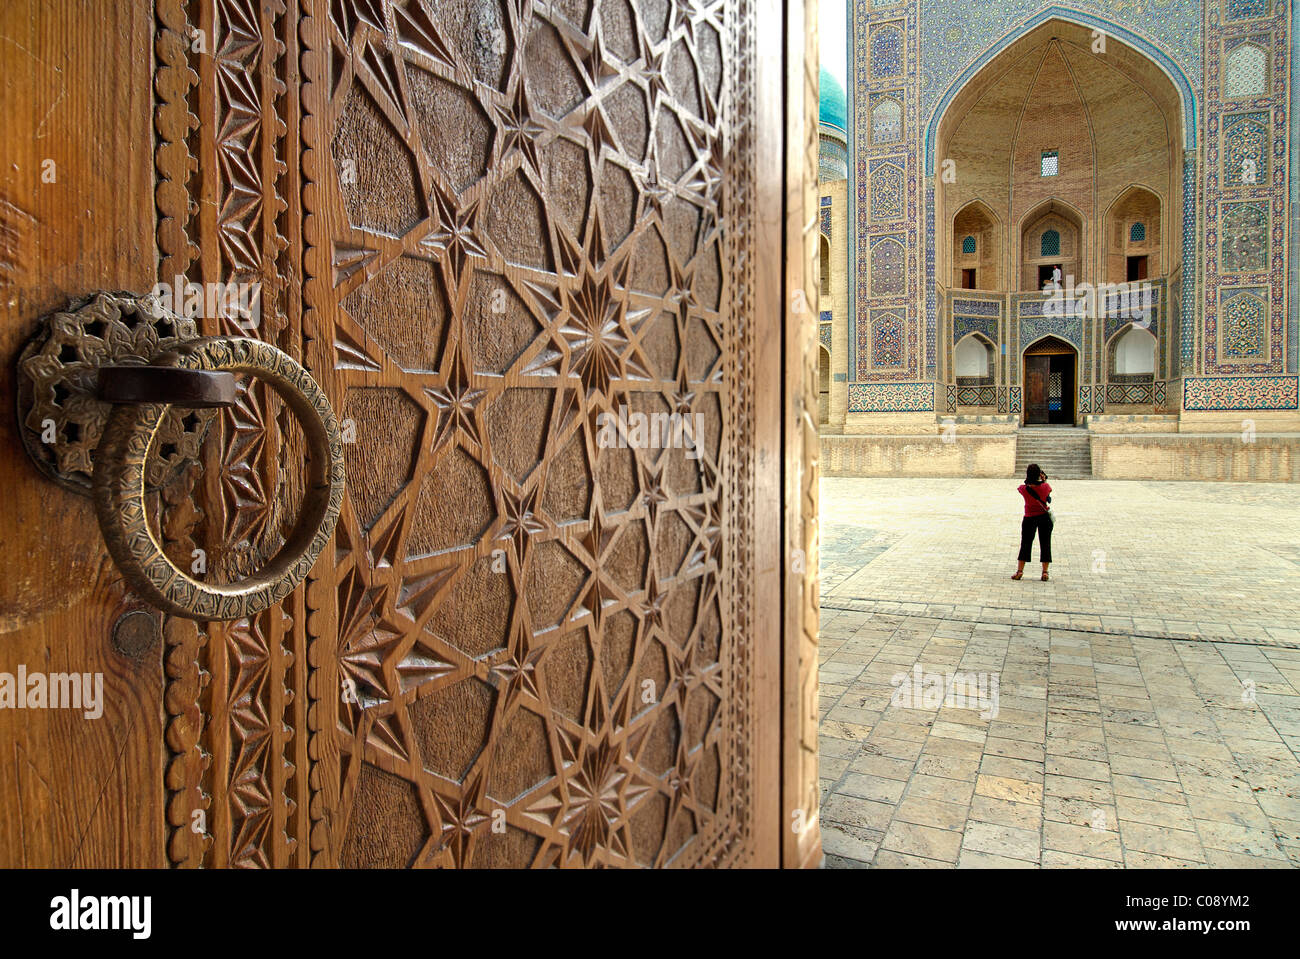 The Mir-i-arab Madrassah seen beyond the ornate carved doors of the Kalon Mosque, Bukhara, Uzbekistan - Stock Image